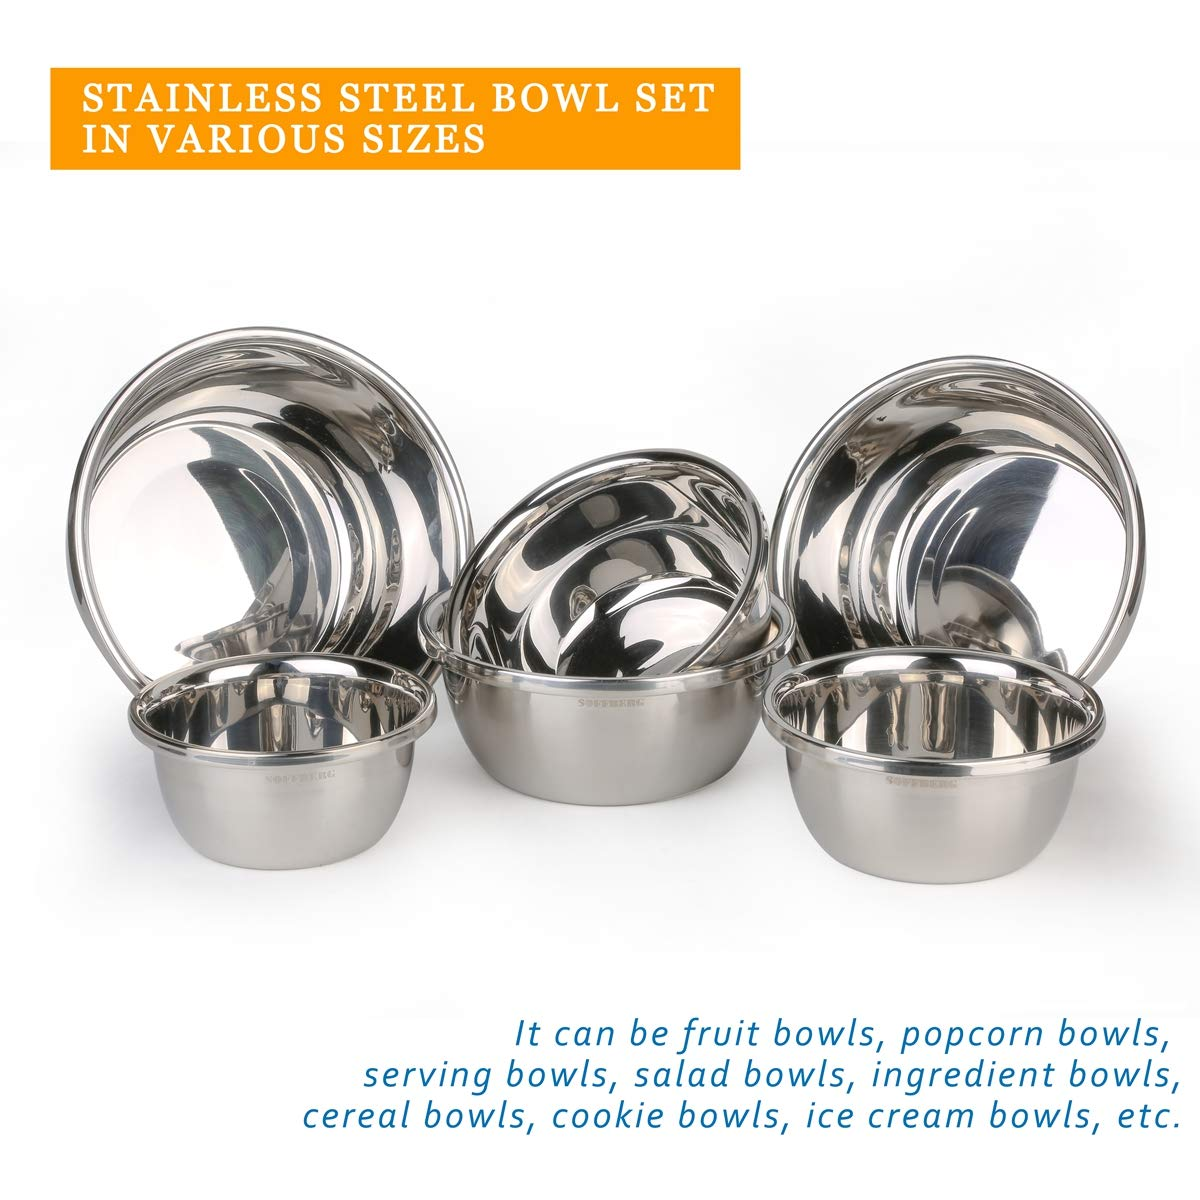 Set of 6 Mixing Bowls Stainless Steel Nesting and Convenient Storage for Meal prep, Salad, Cooking, Baking, Serving by SOFFBERG (Image #5)